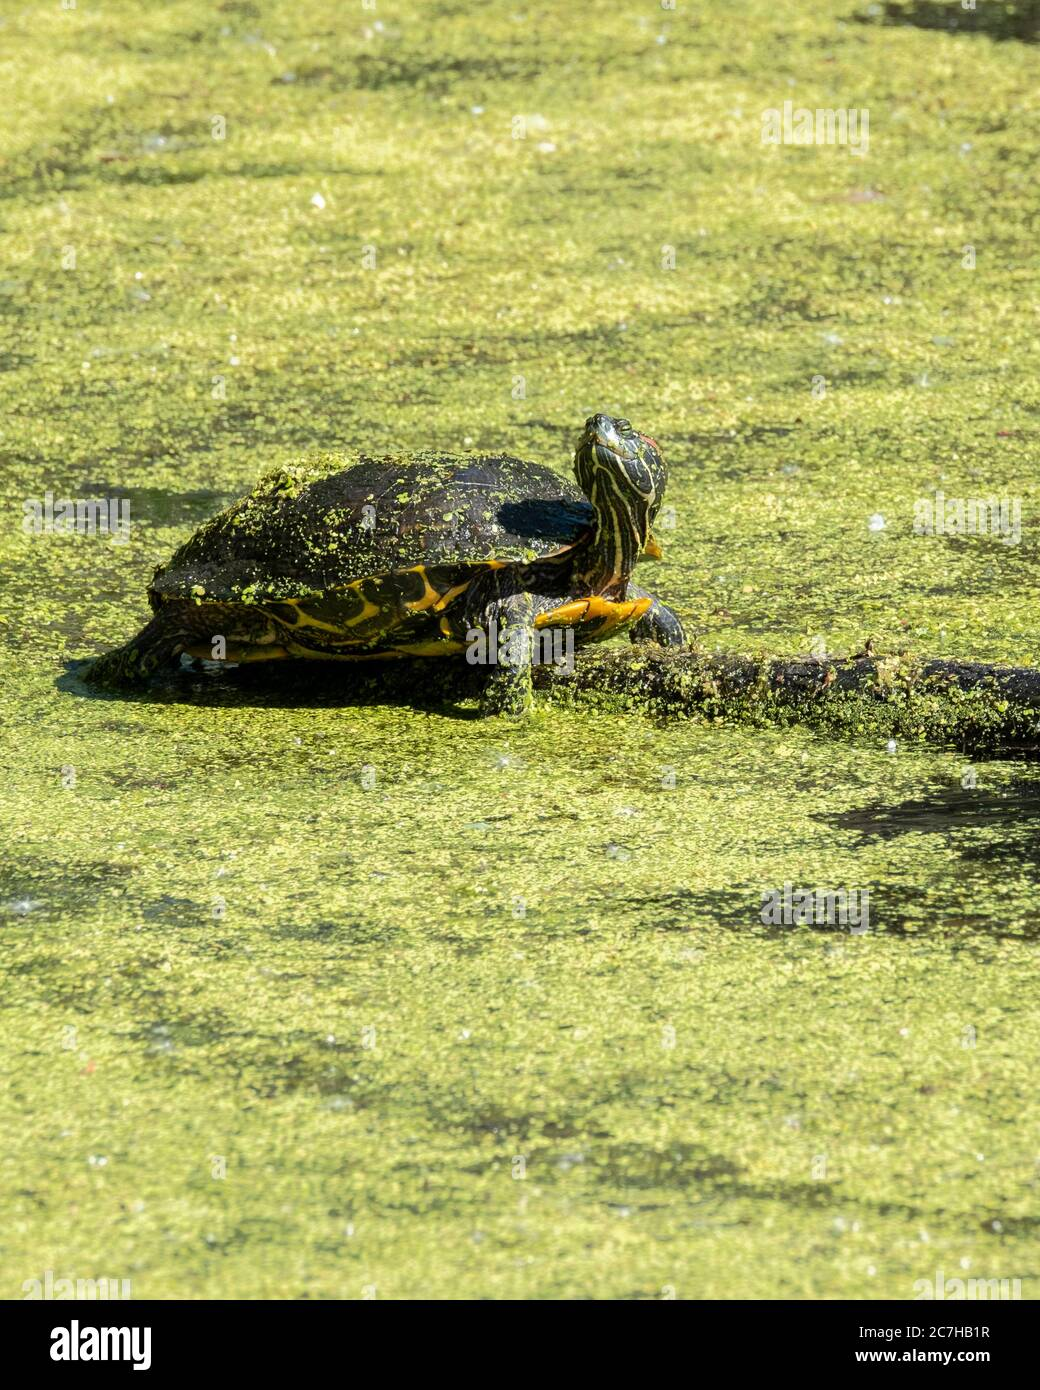 a-red-eared-slider-turtle-trachemys-scri